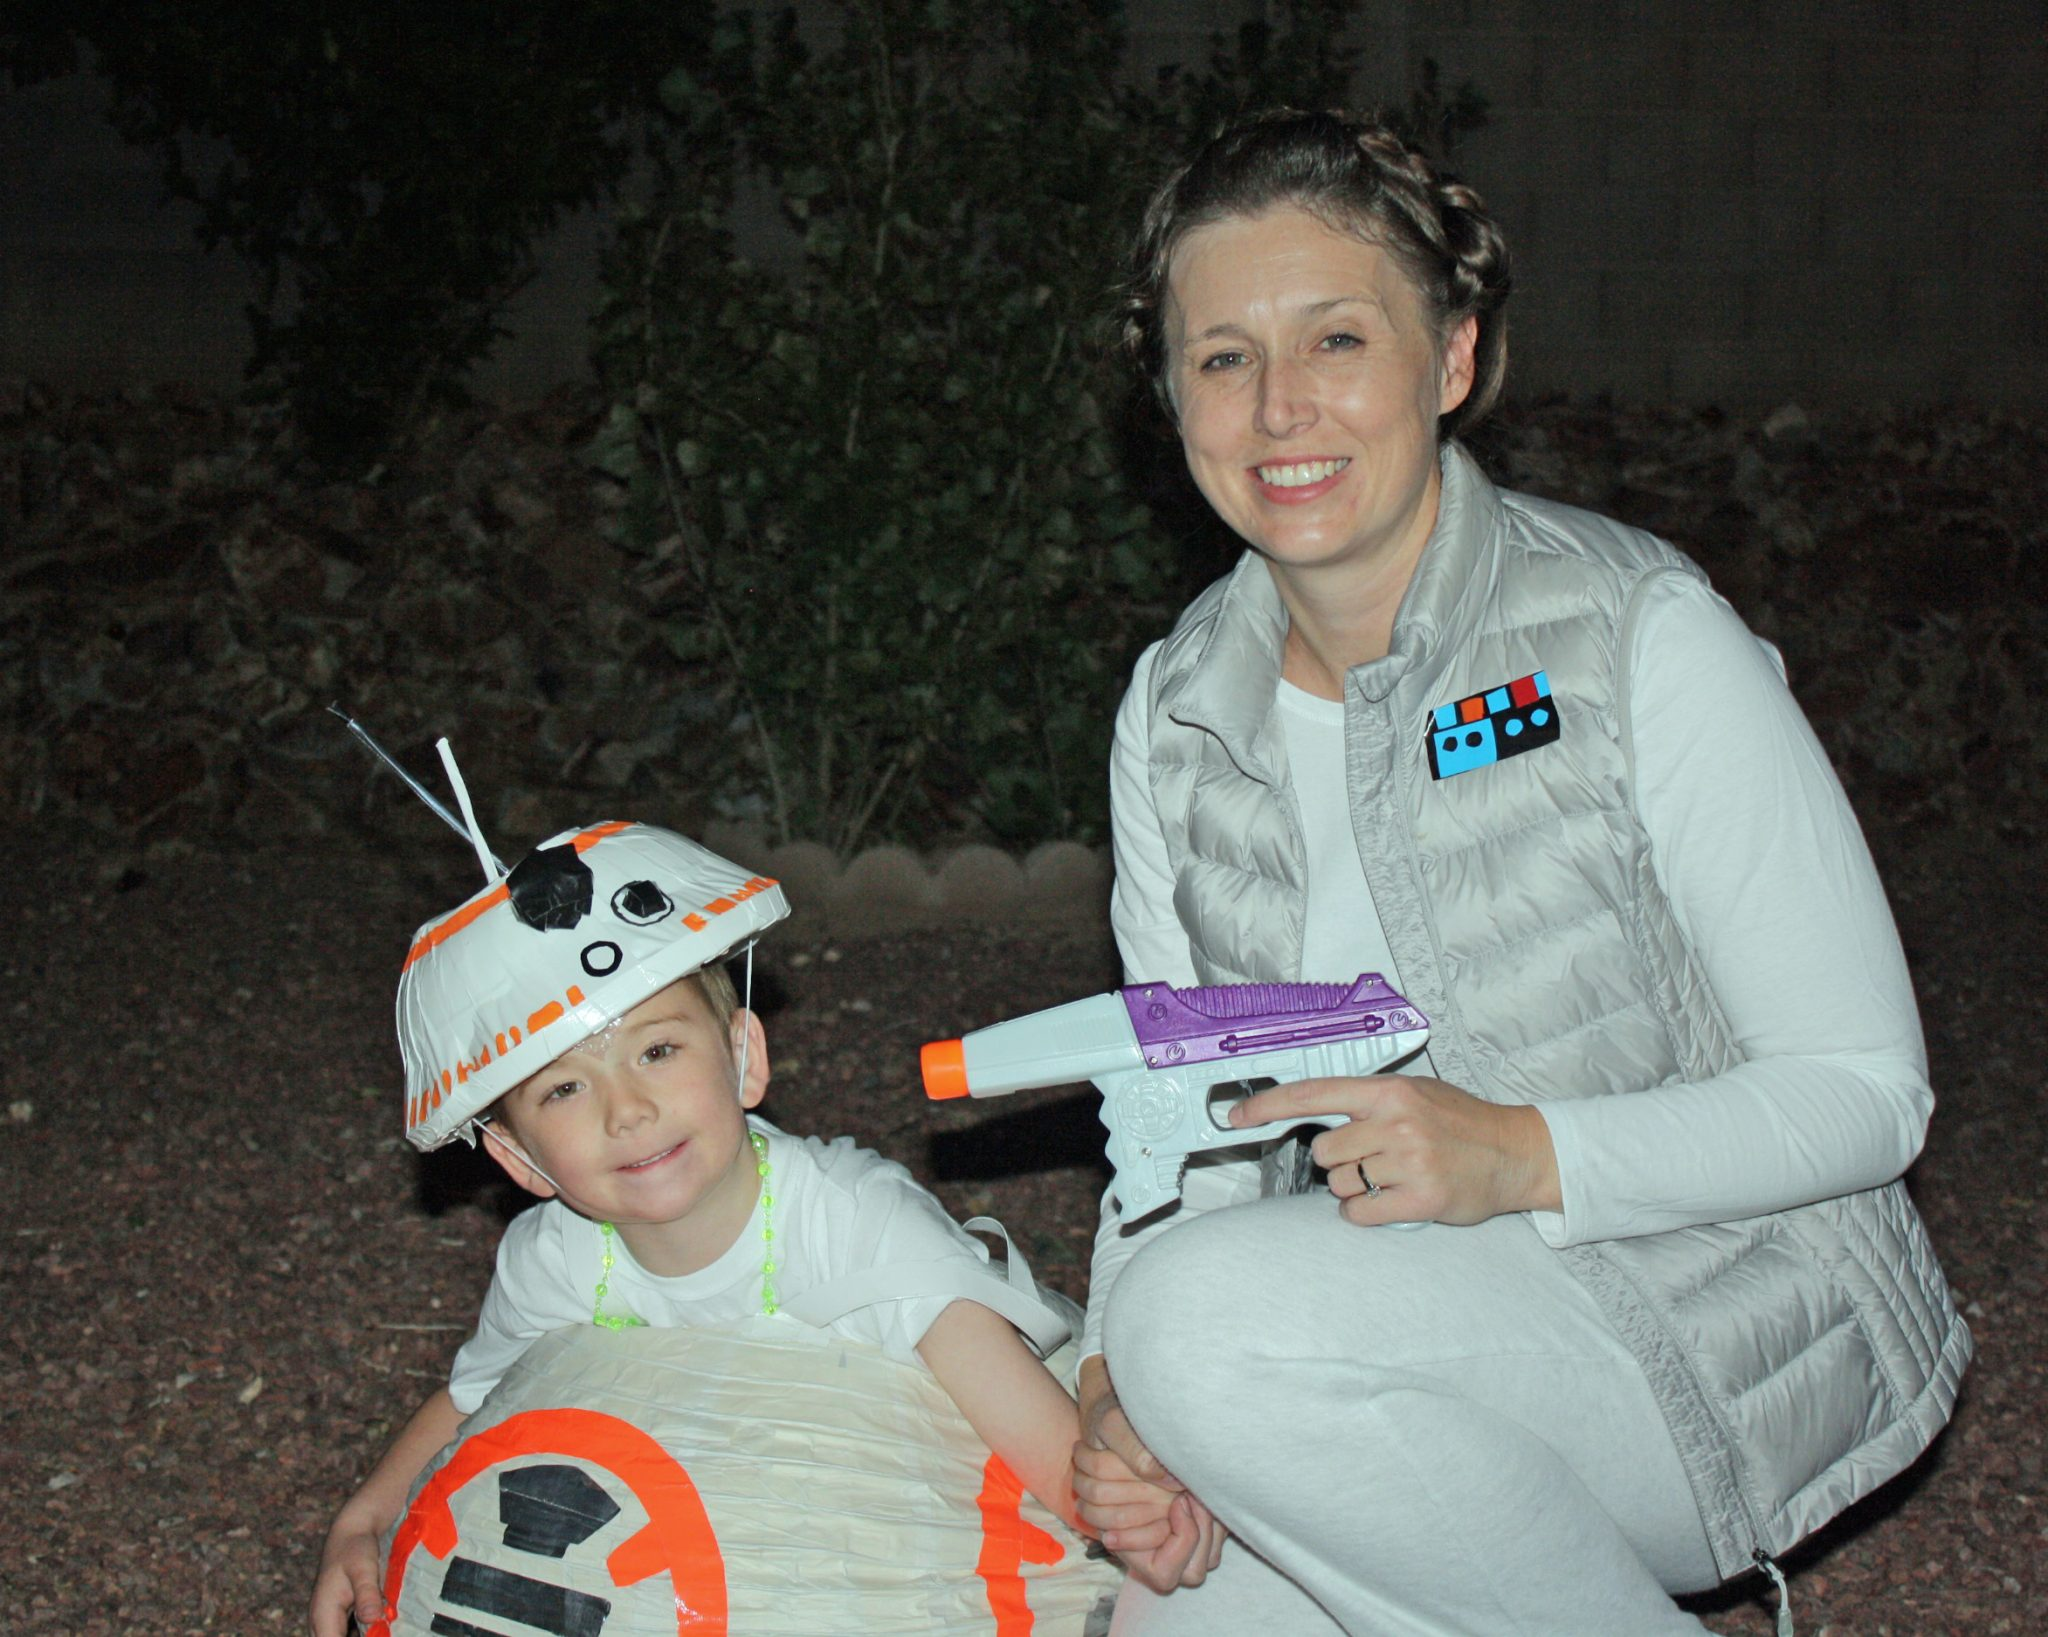 BB-8 and Leia Costumes